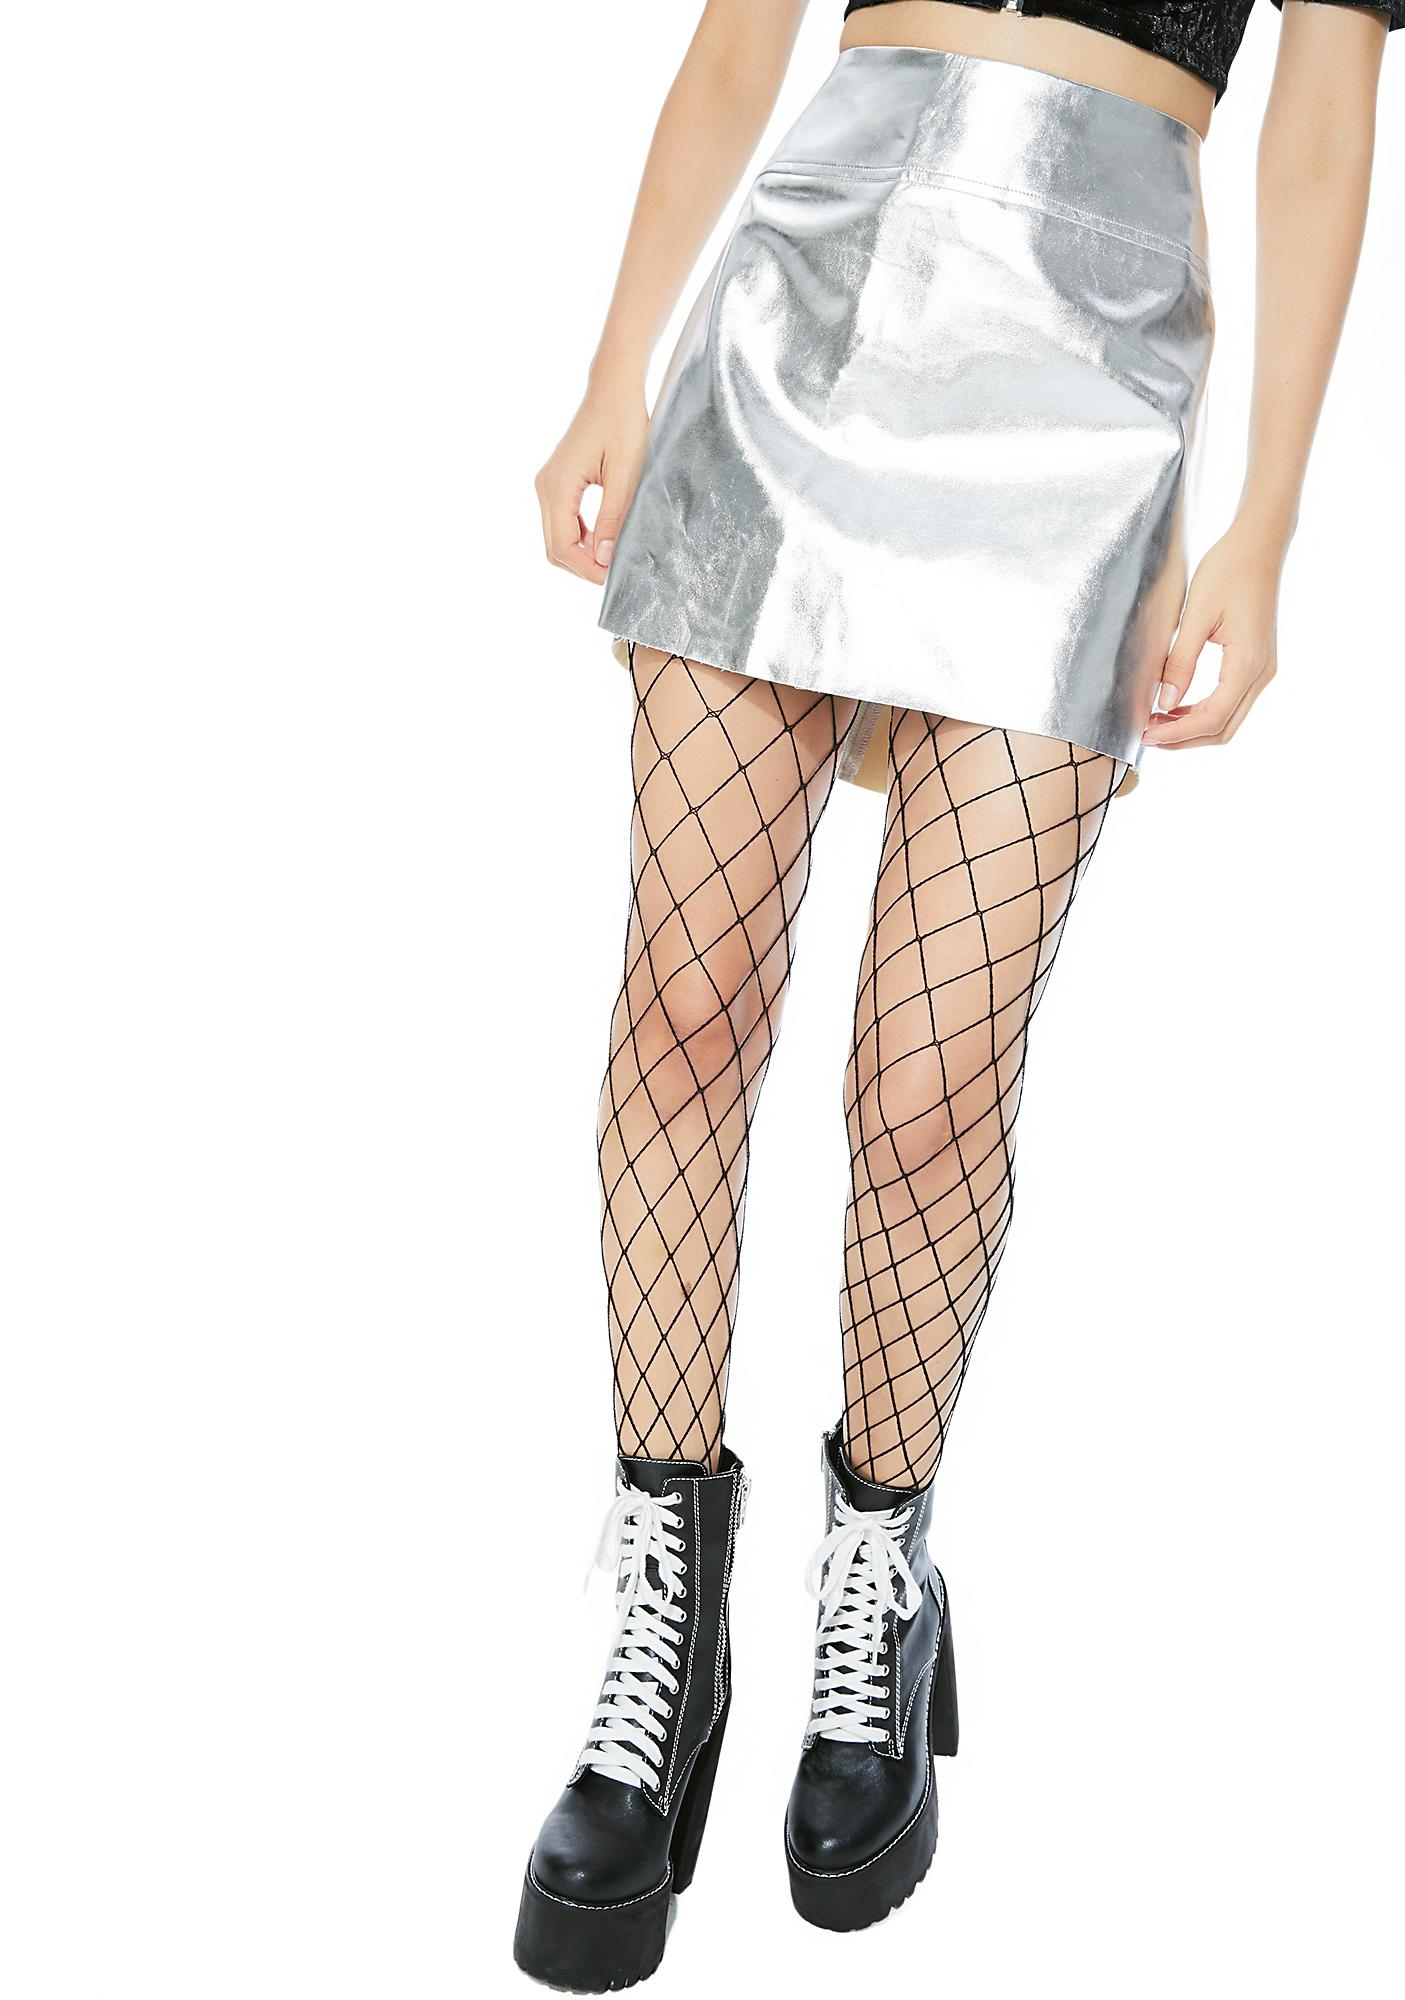 Need Some Space Mini Skirt